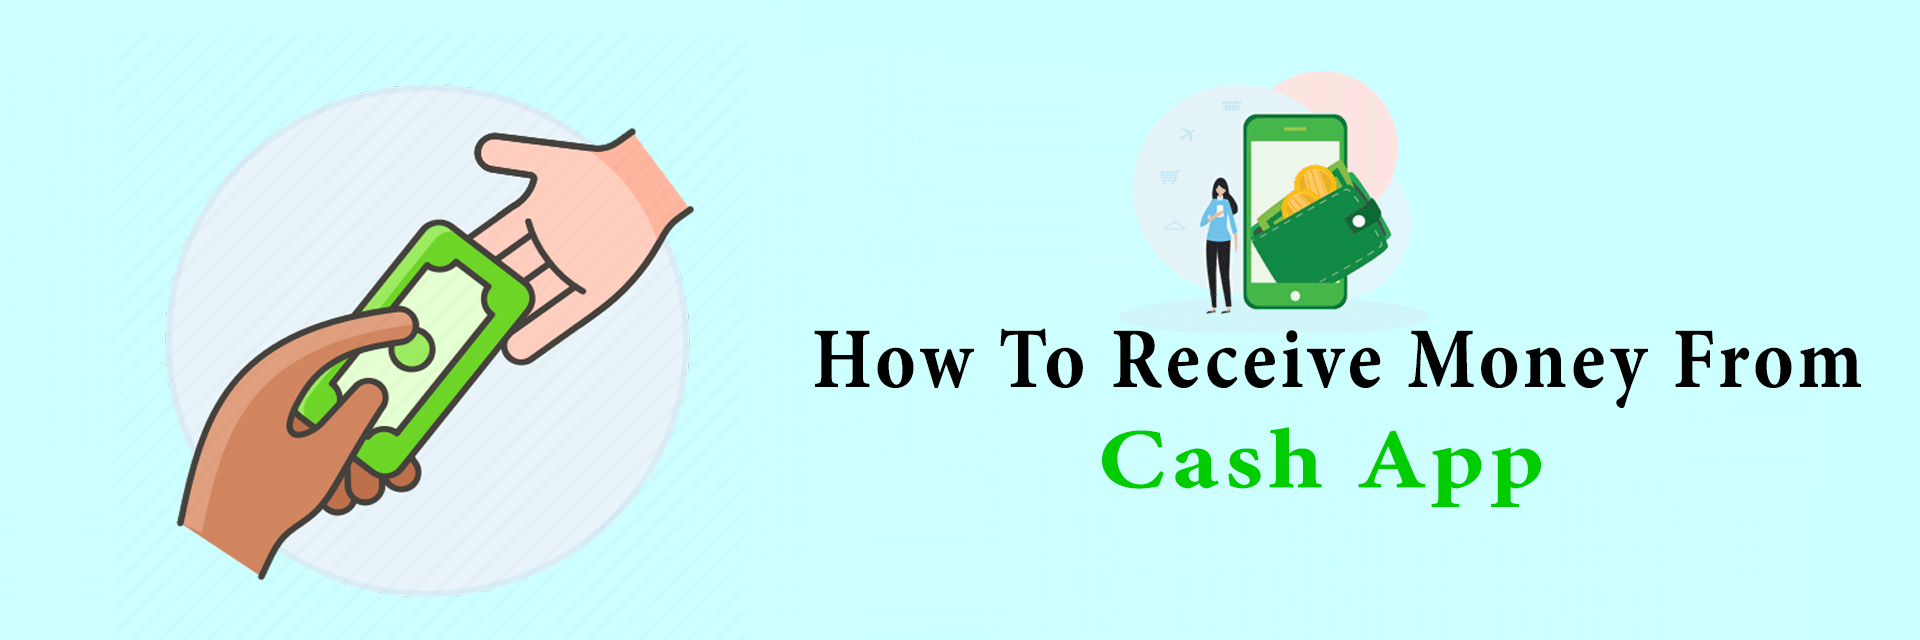 How To Receive Money From Cash App,